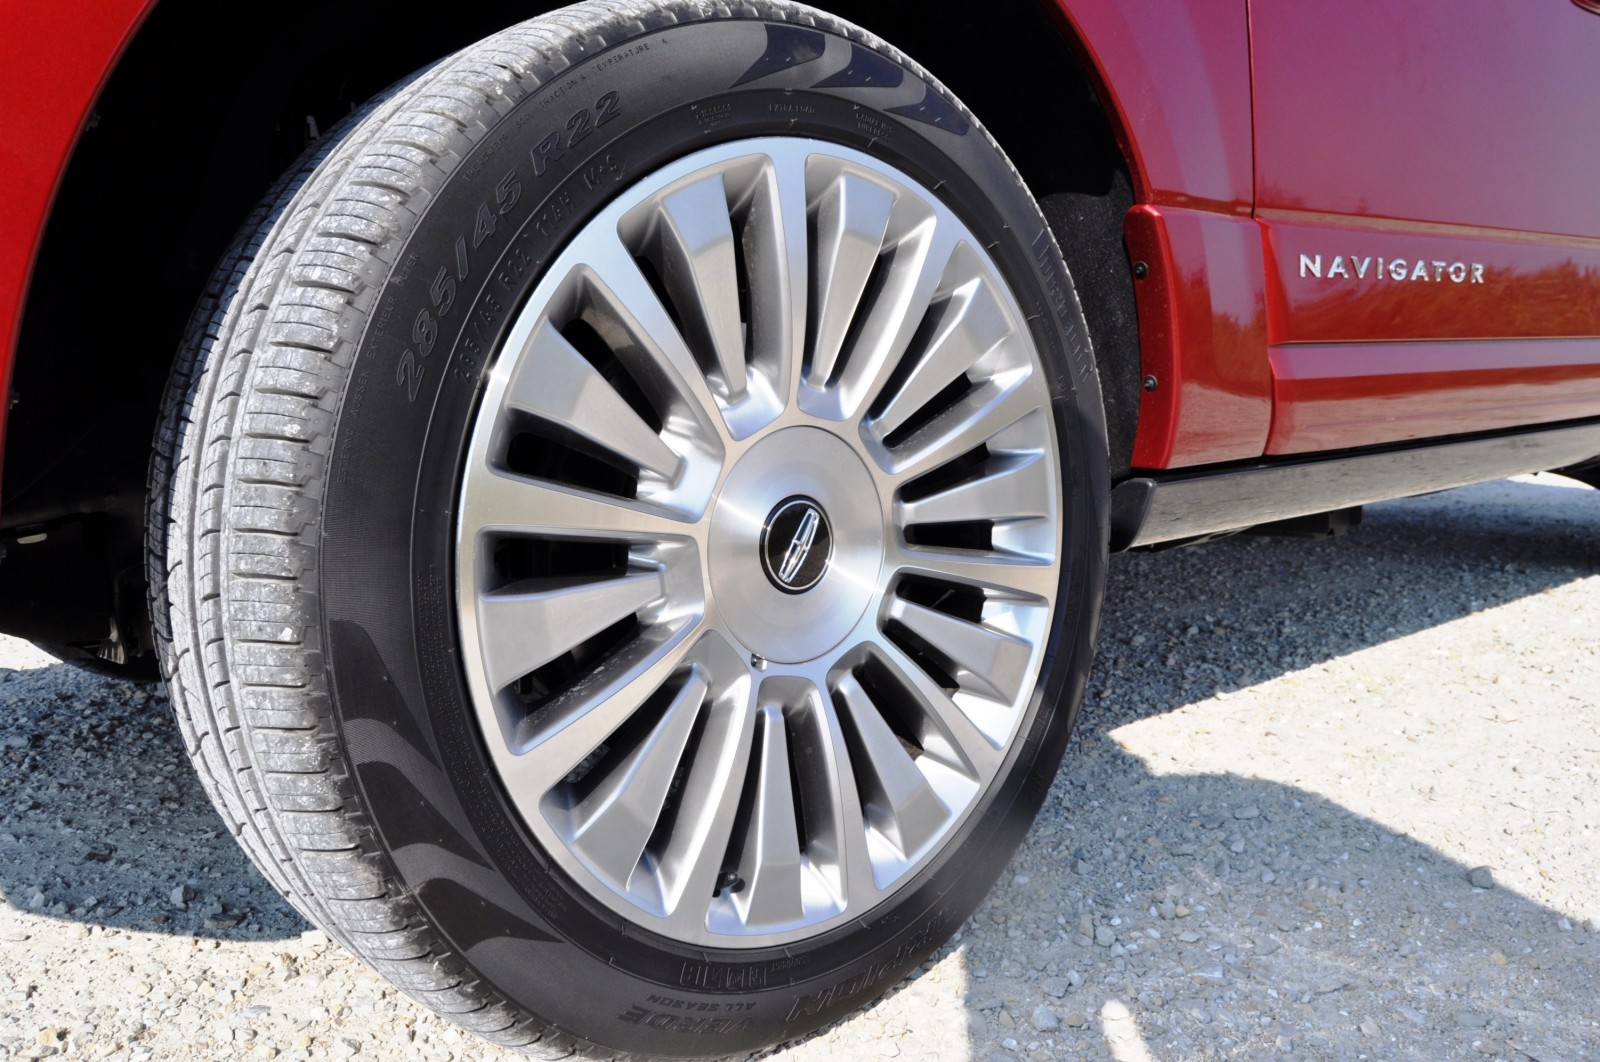 Road Test Review - 2015 Lincoln Navigator Is Totally Transformed By MR Shocks and EcoBoost 22